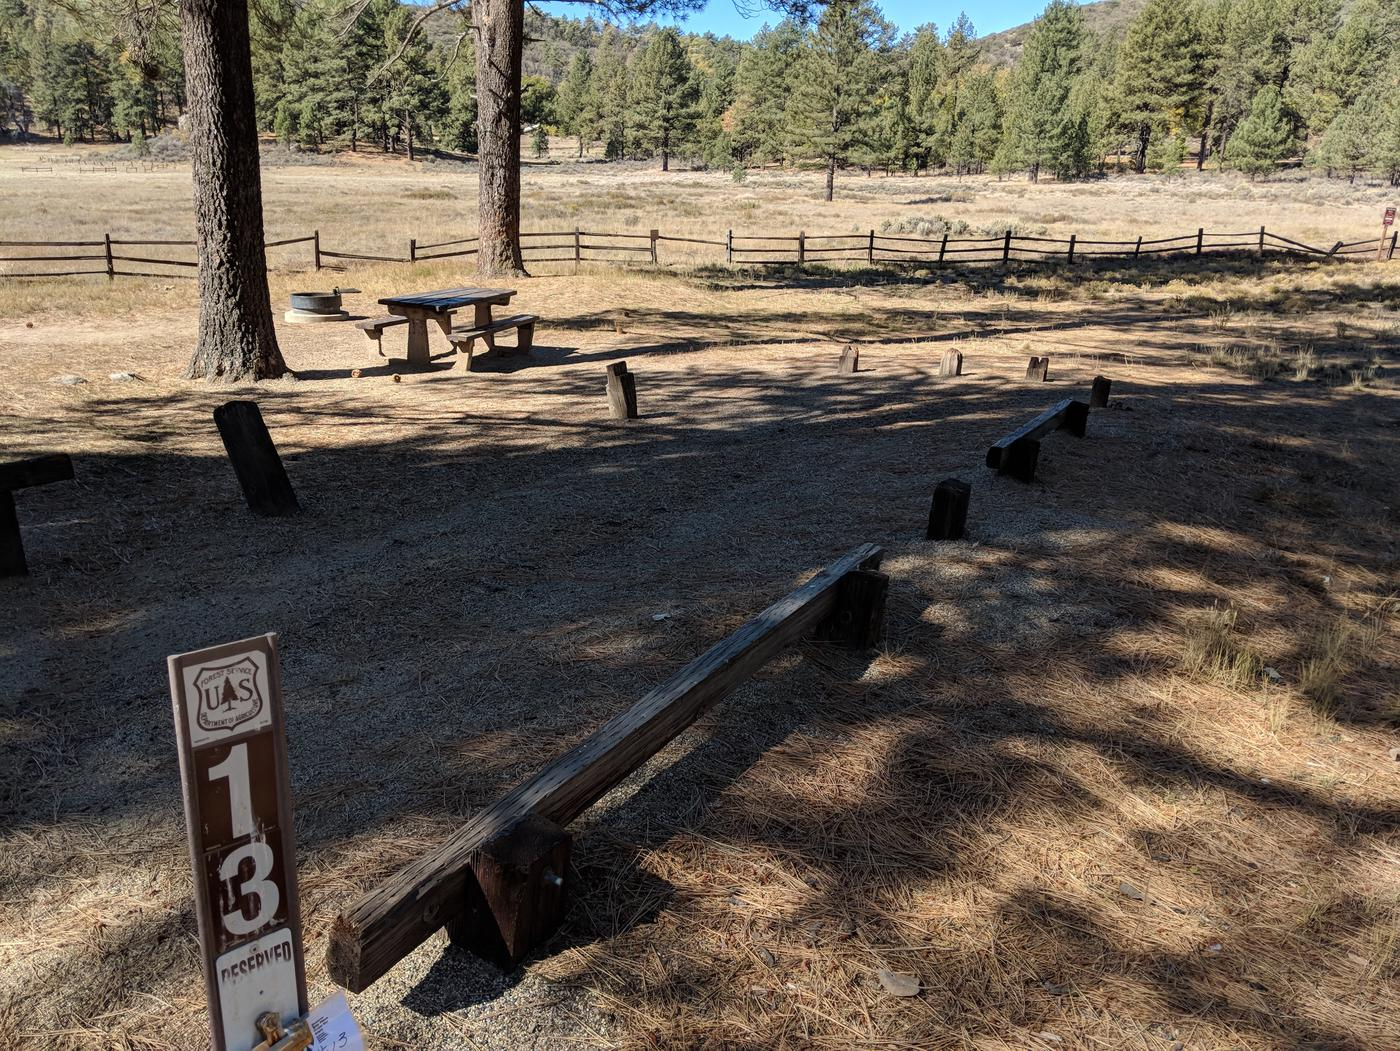 Laguna Campground site #13 wooded camping space view and picnic area.